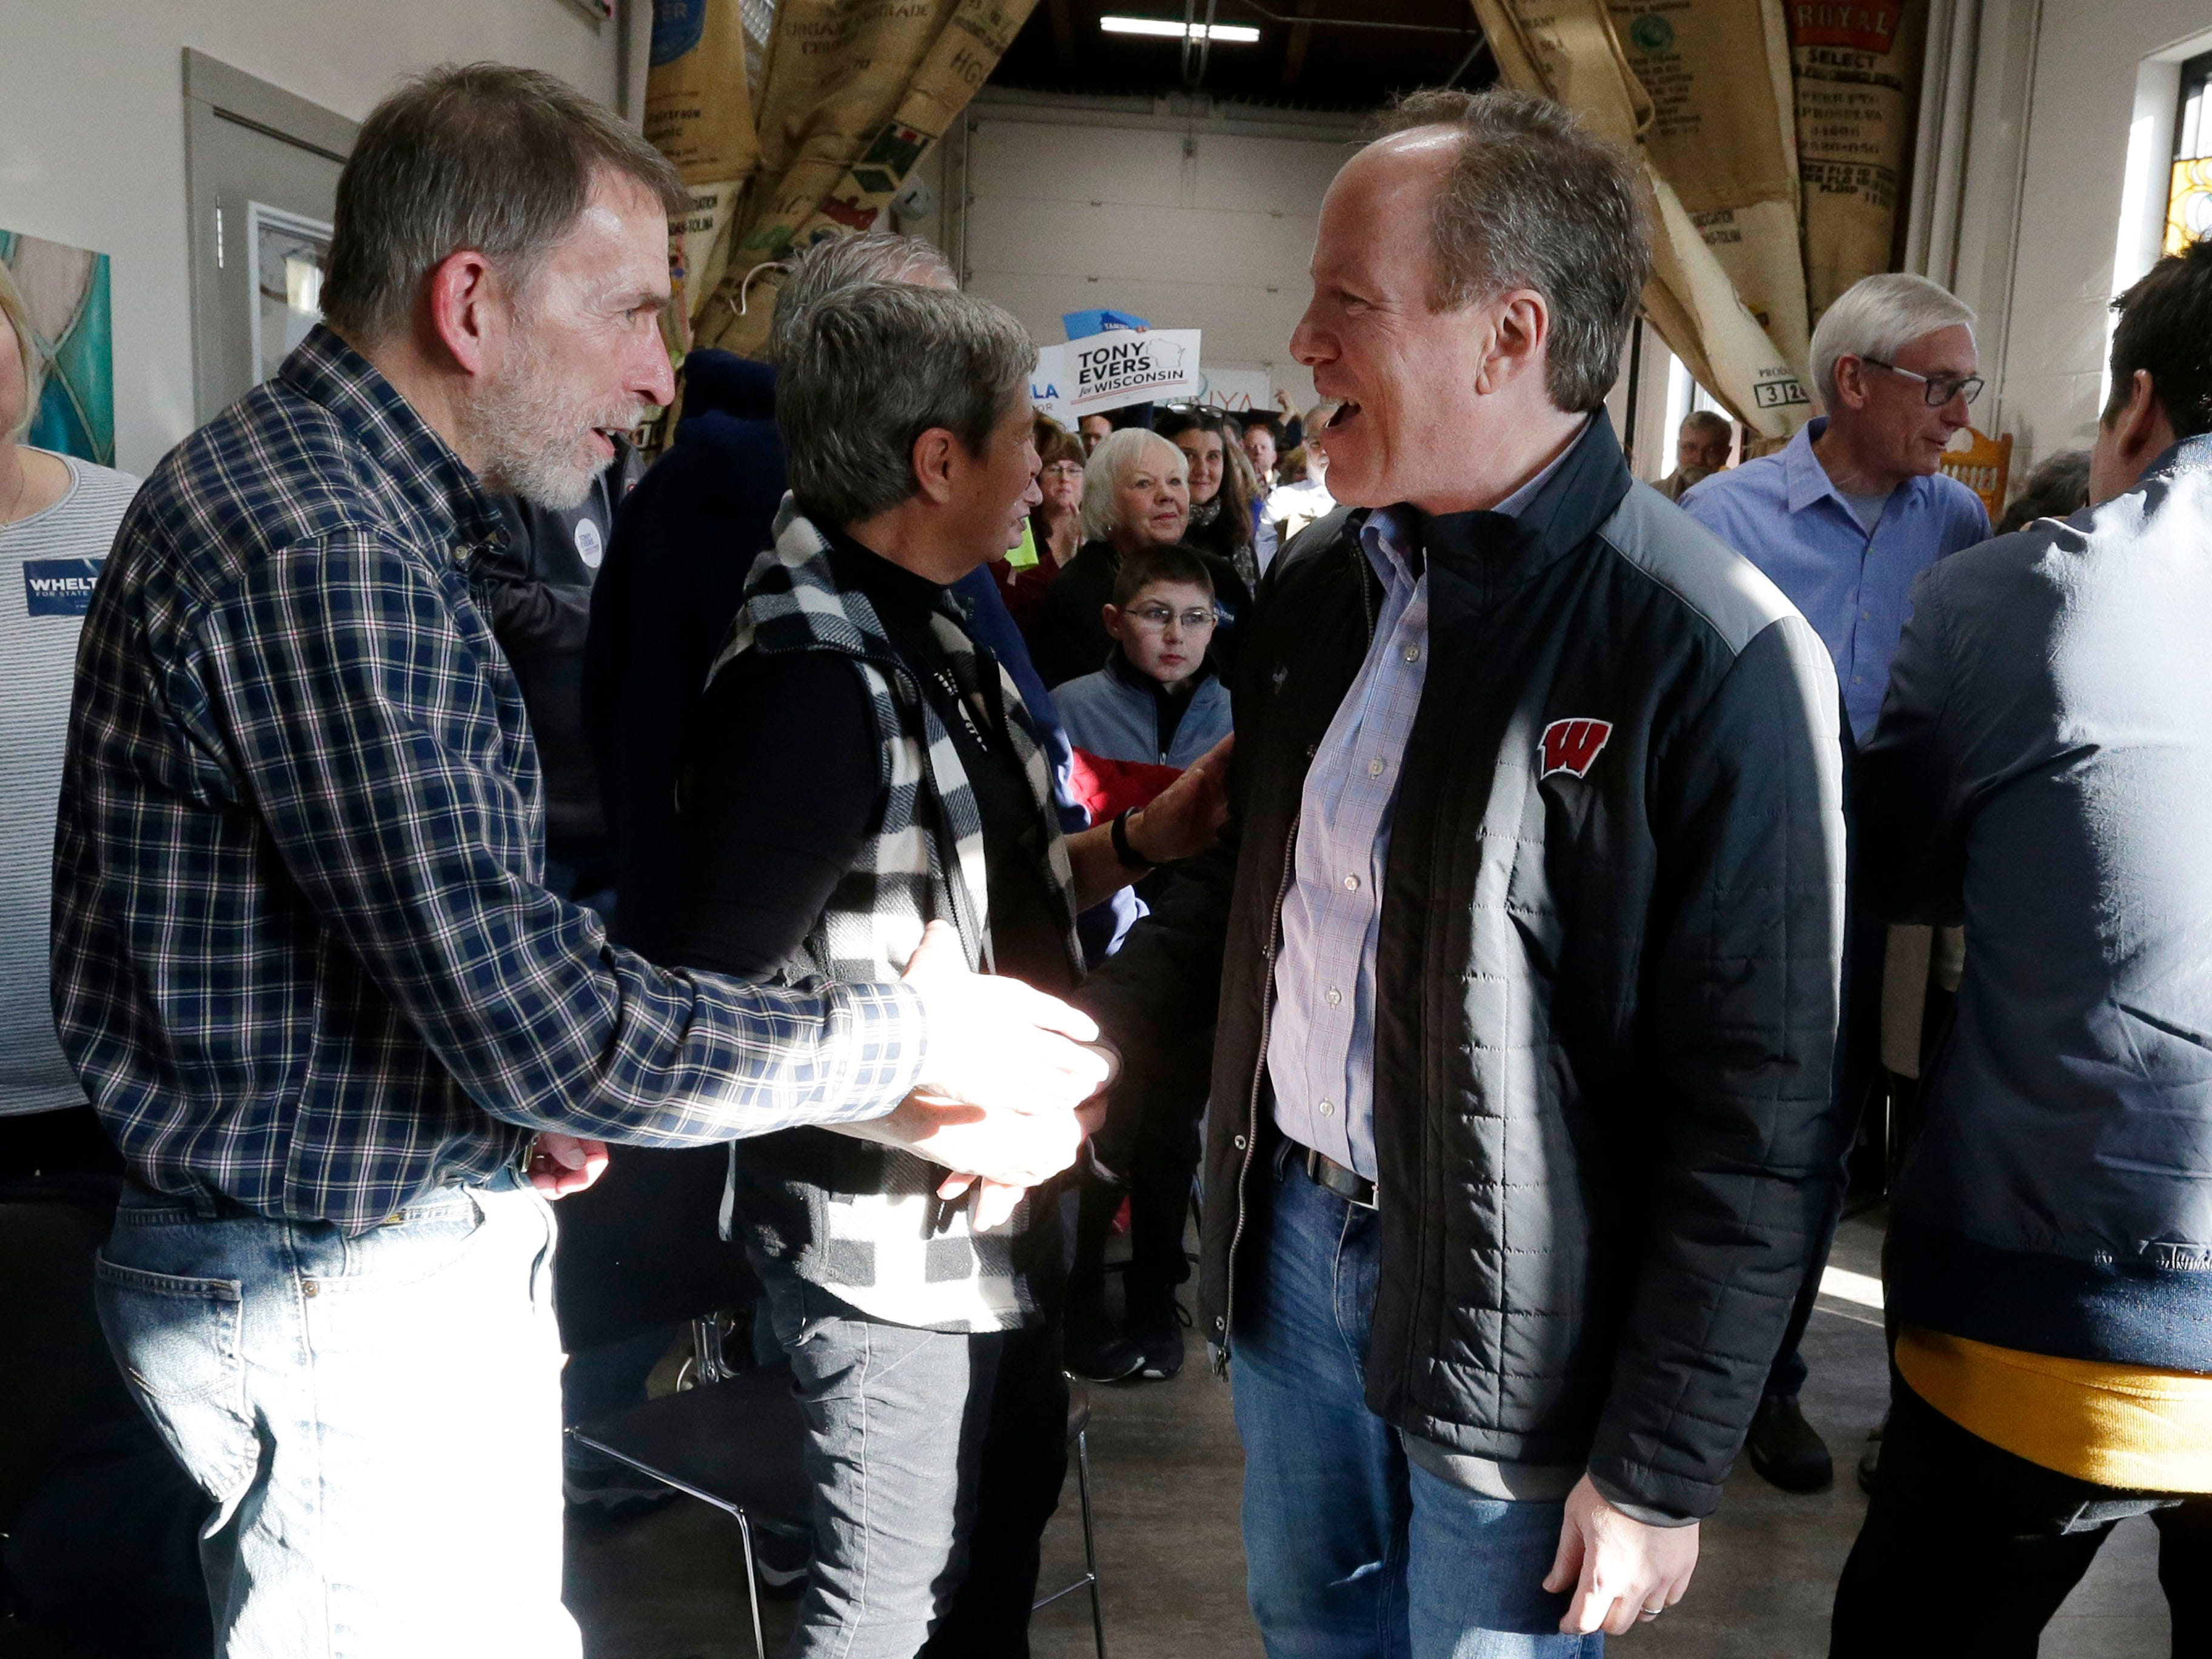 U.S. representative candidate Dan Kohl, right, shakes hands during a campaign stop at The Hub coffee shop, Saturday, November 3, 2018, in Plymouth, Wis.